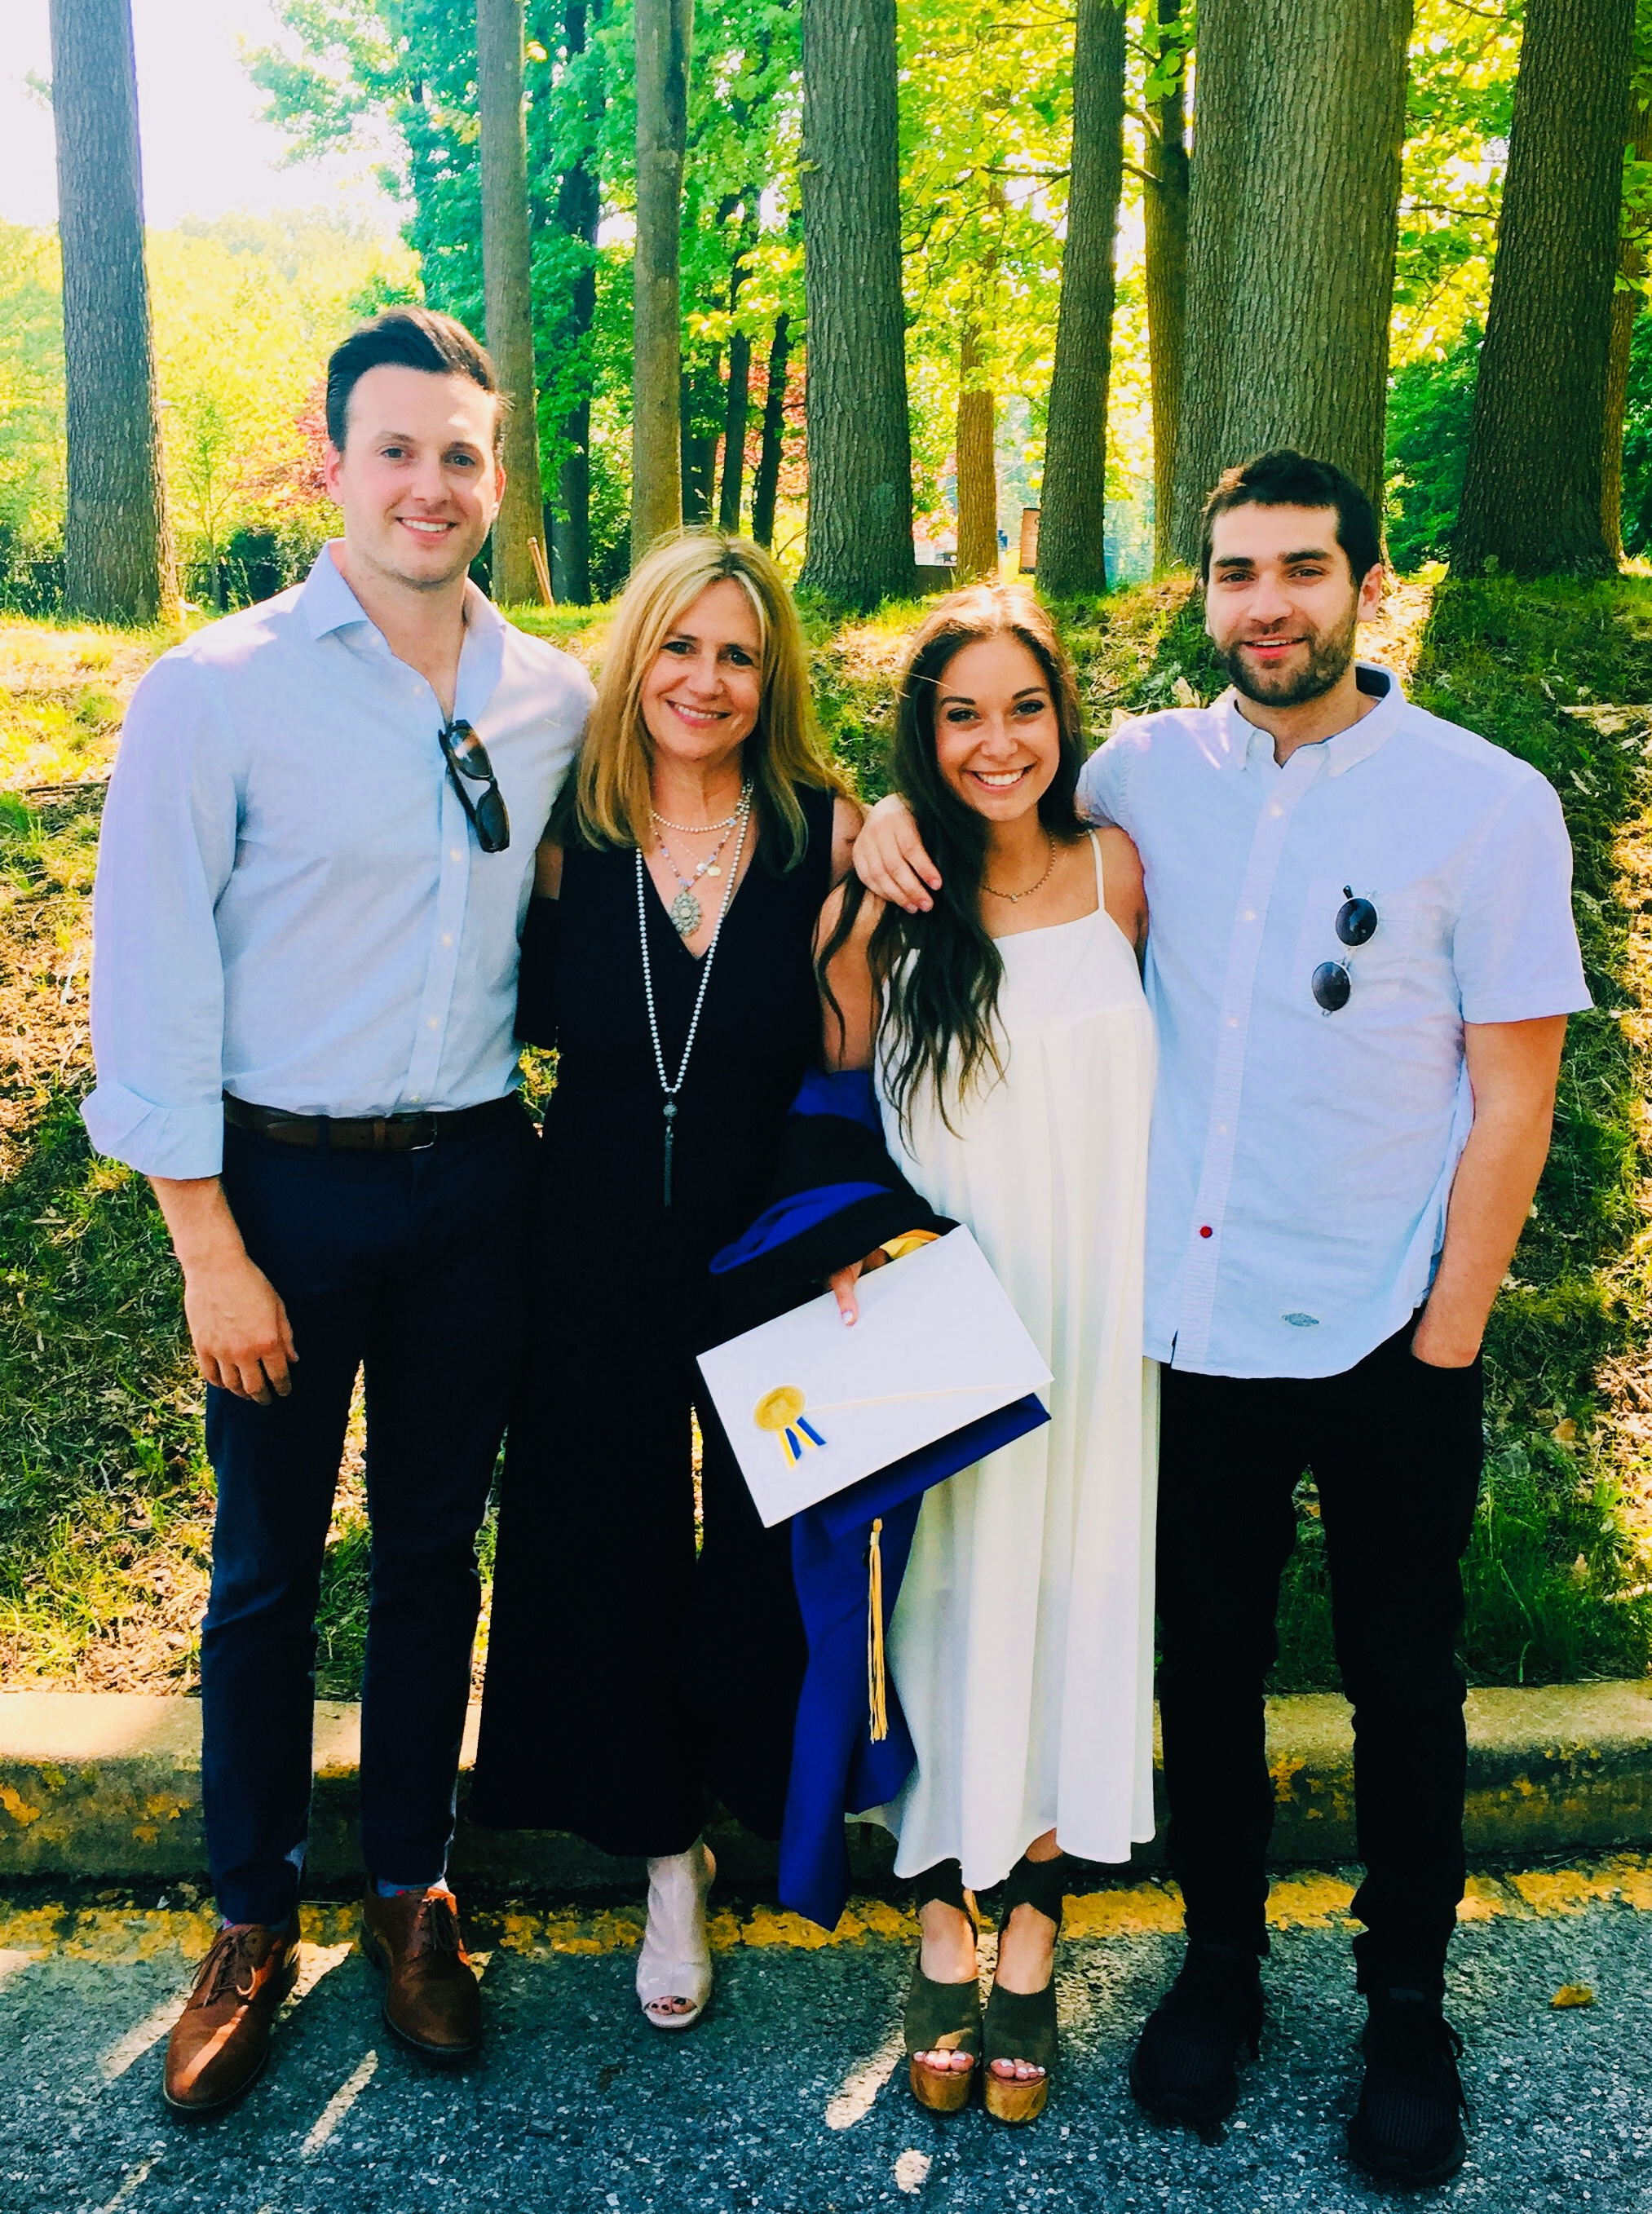 Cindy and her three STMS alumni: Nicholas Calitri '06; Samantha Calitri '10; Tyler Calitri '08